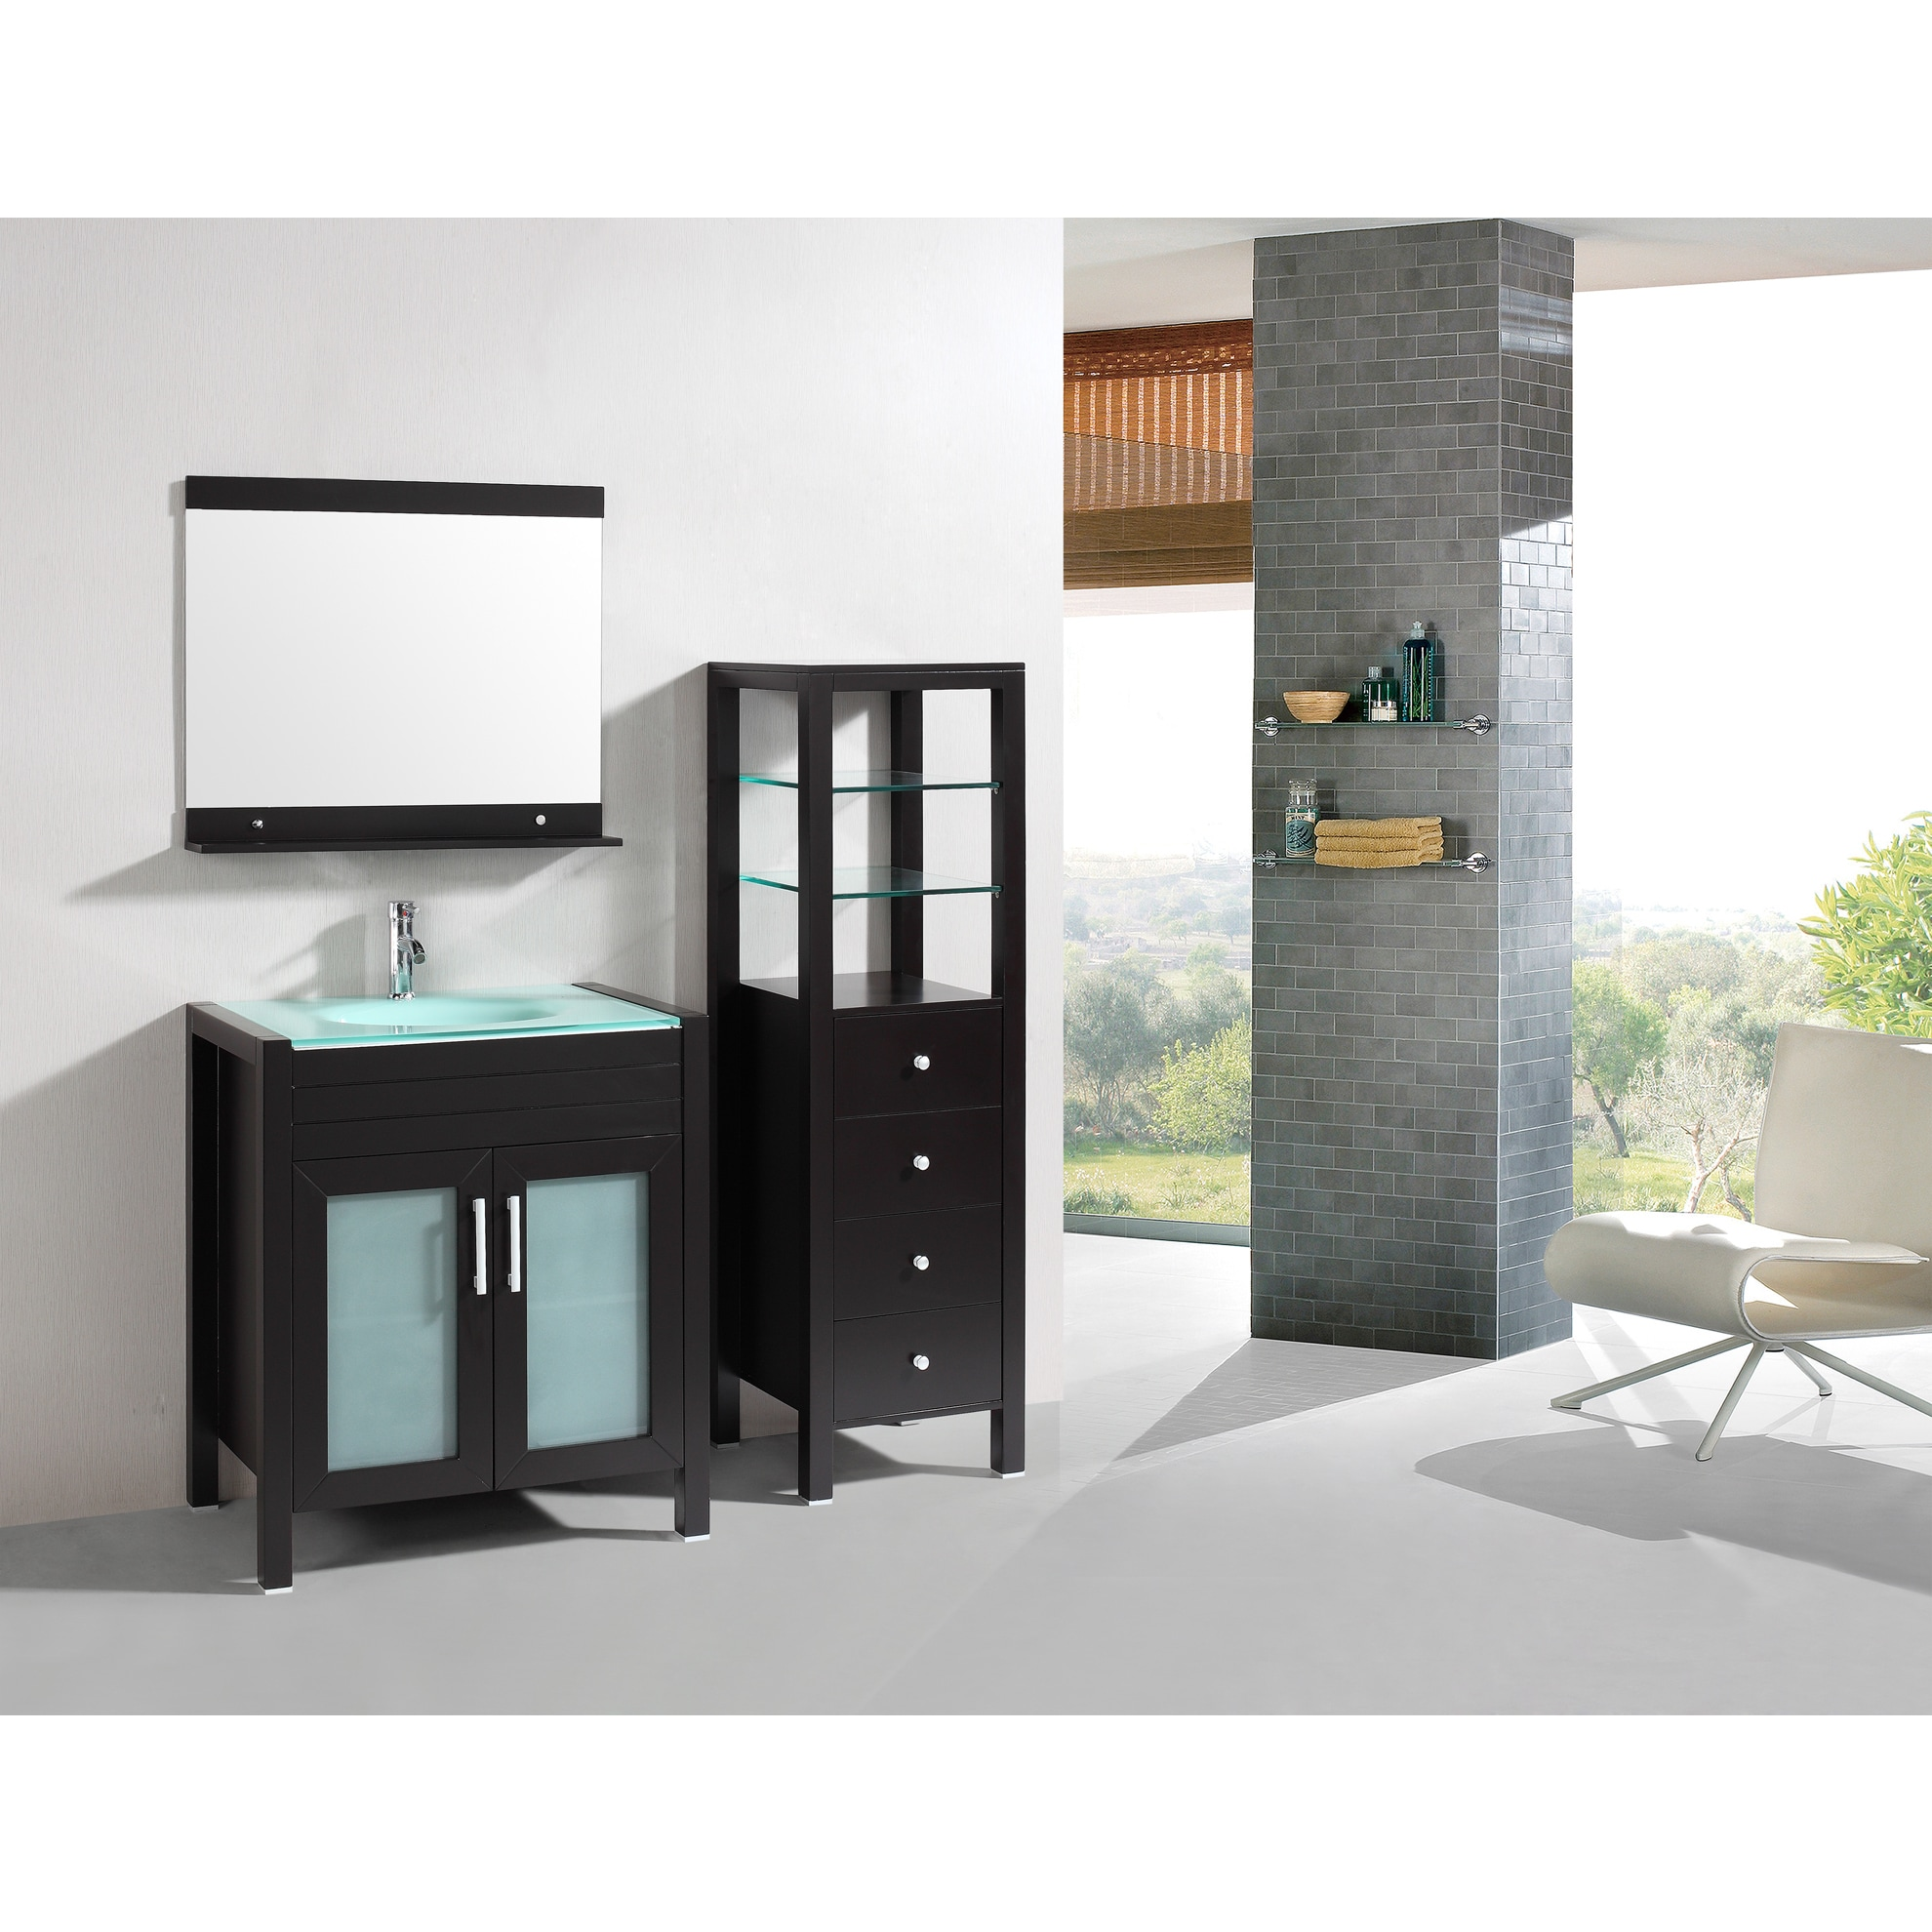 Shop Eviva Roca 36-Inch Espresso Bathroom Vanity cabinet with ...